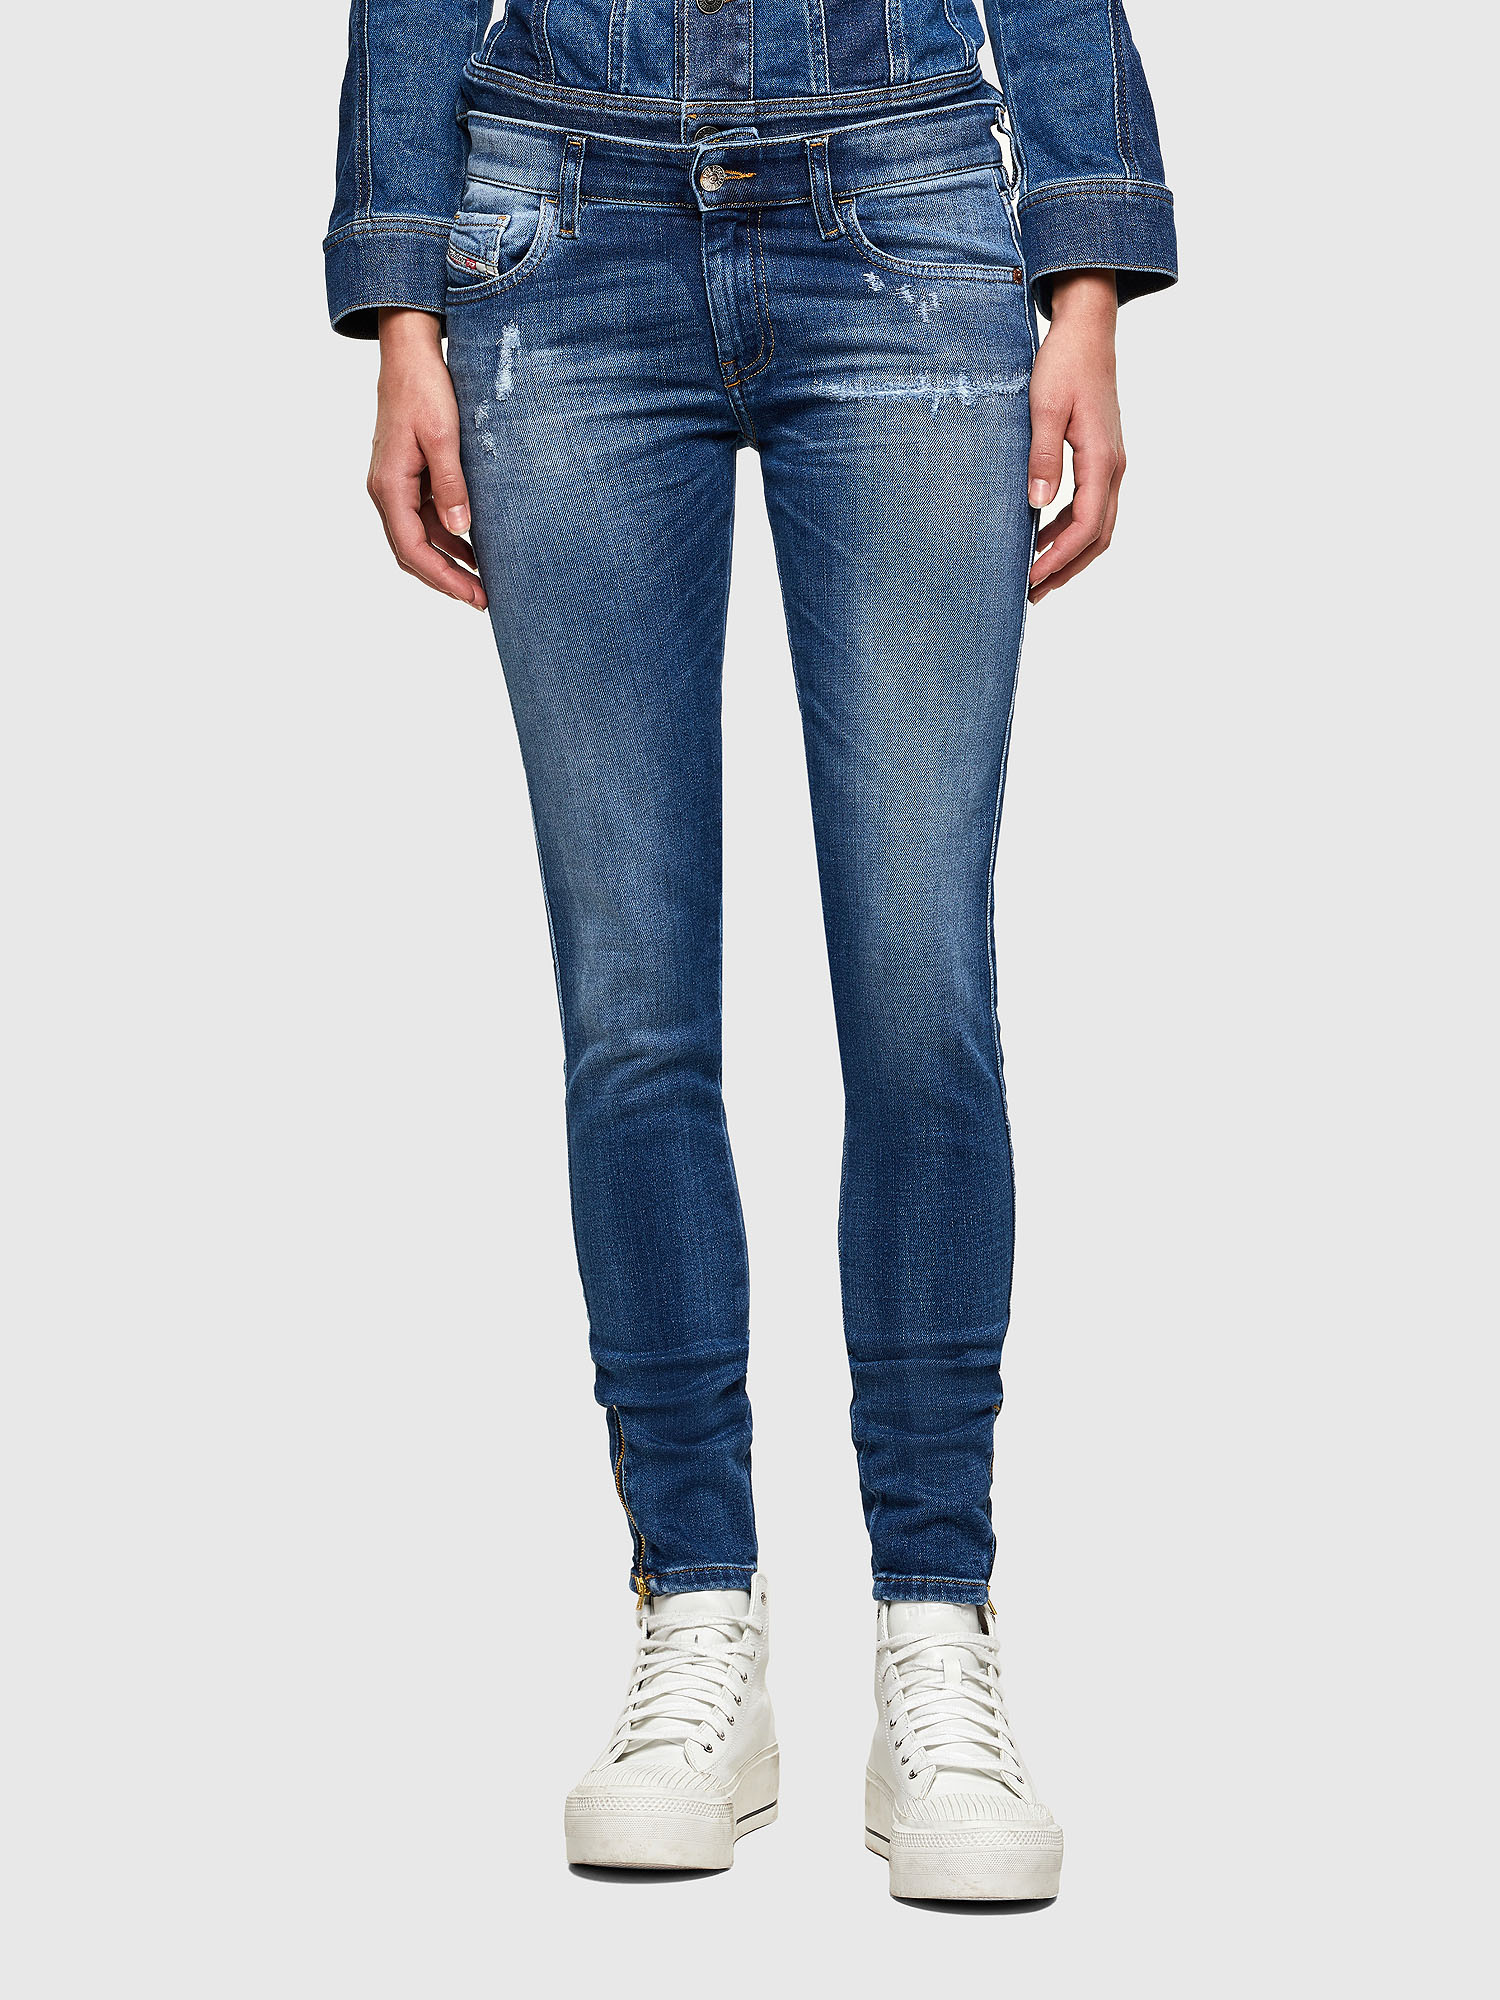 Diesel - Slandy Low 009PU, Medium blue - Jeans - Image 1